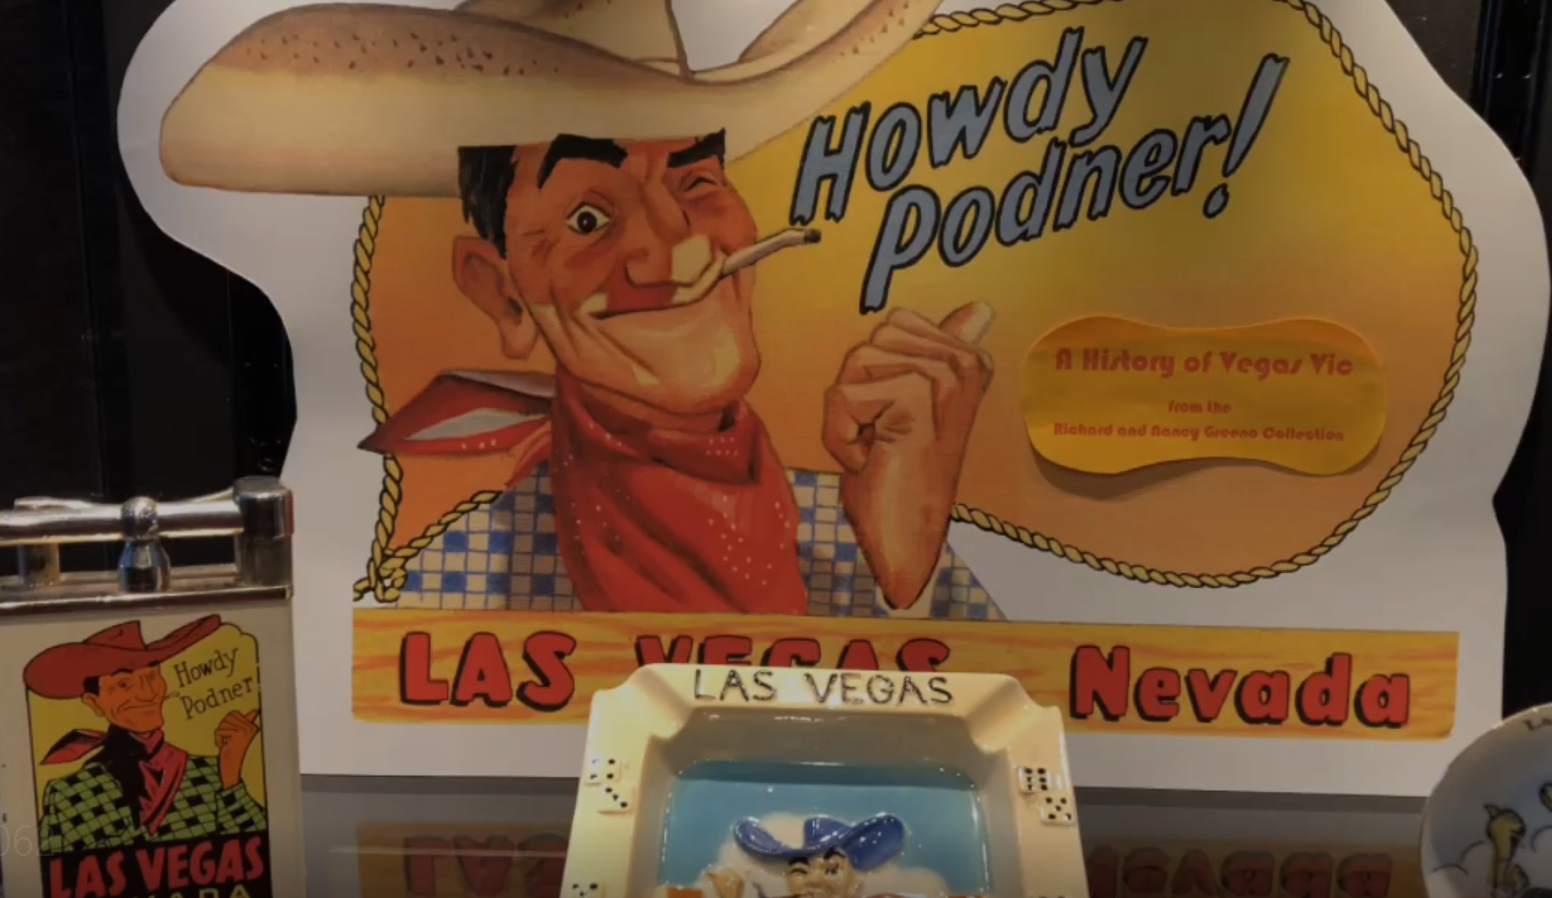 Image result for Vegas vic exhibit nevada state museum las vegas